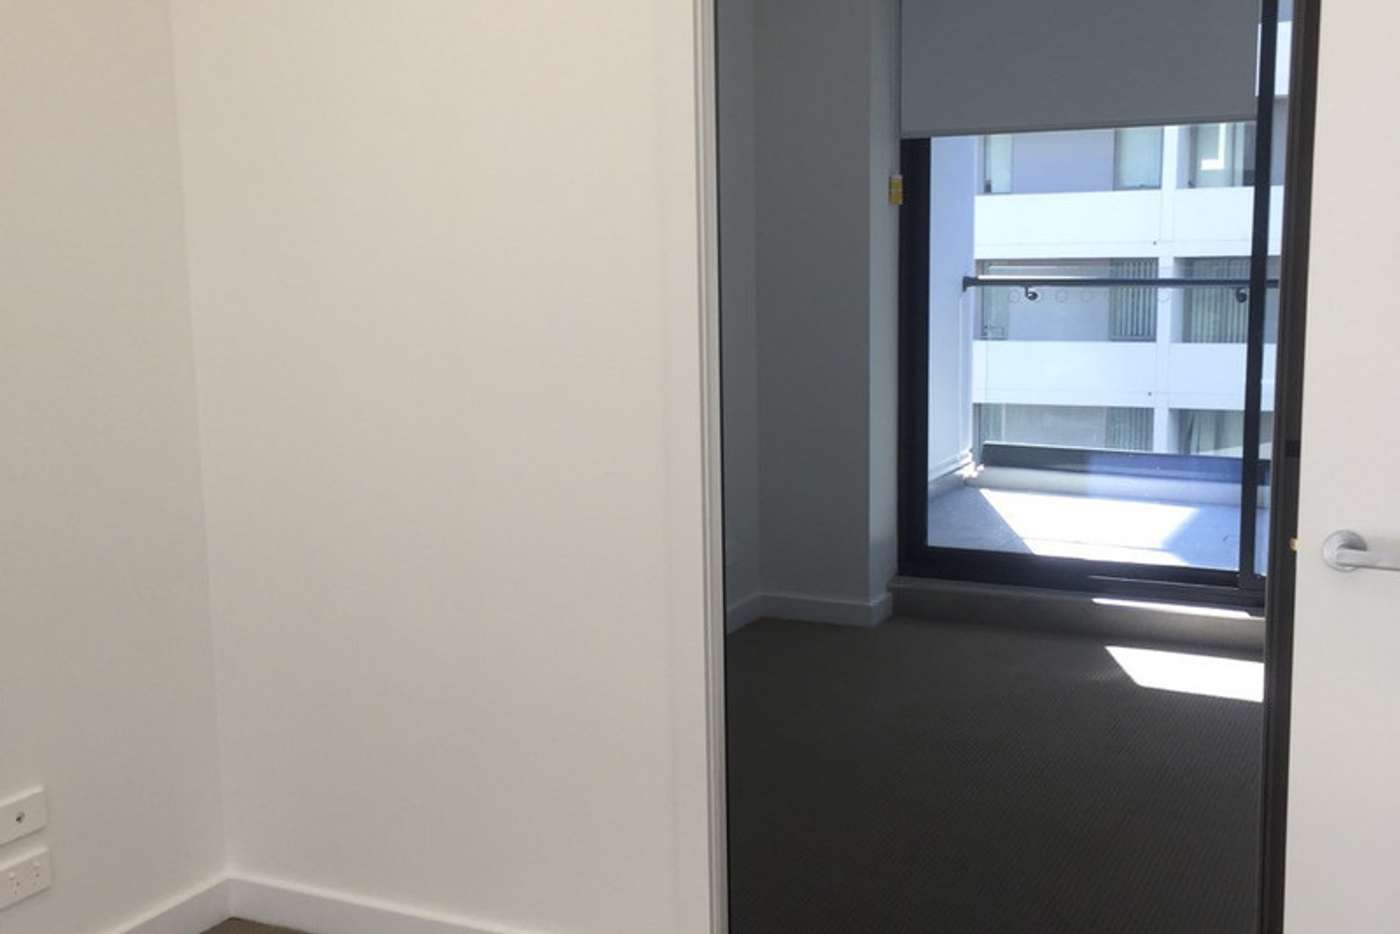 Sixth view of Homely apartment listing, Lv4/3 Haran Street, Mascot NSW 2020